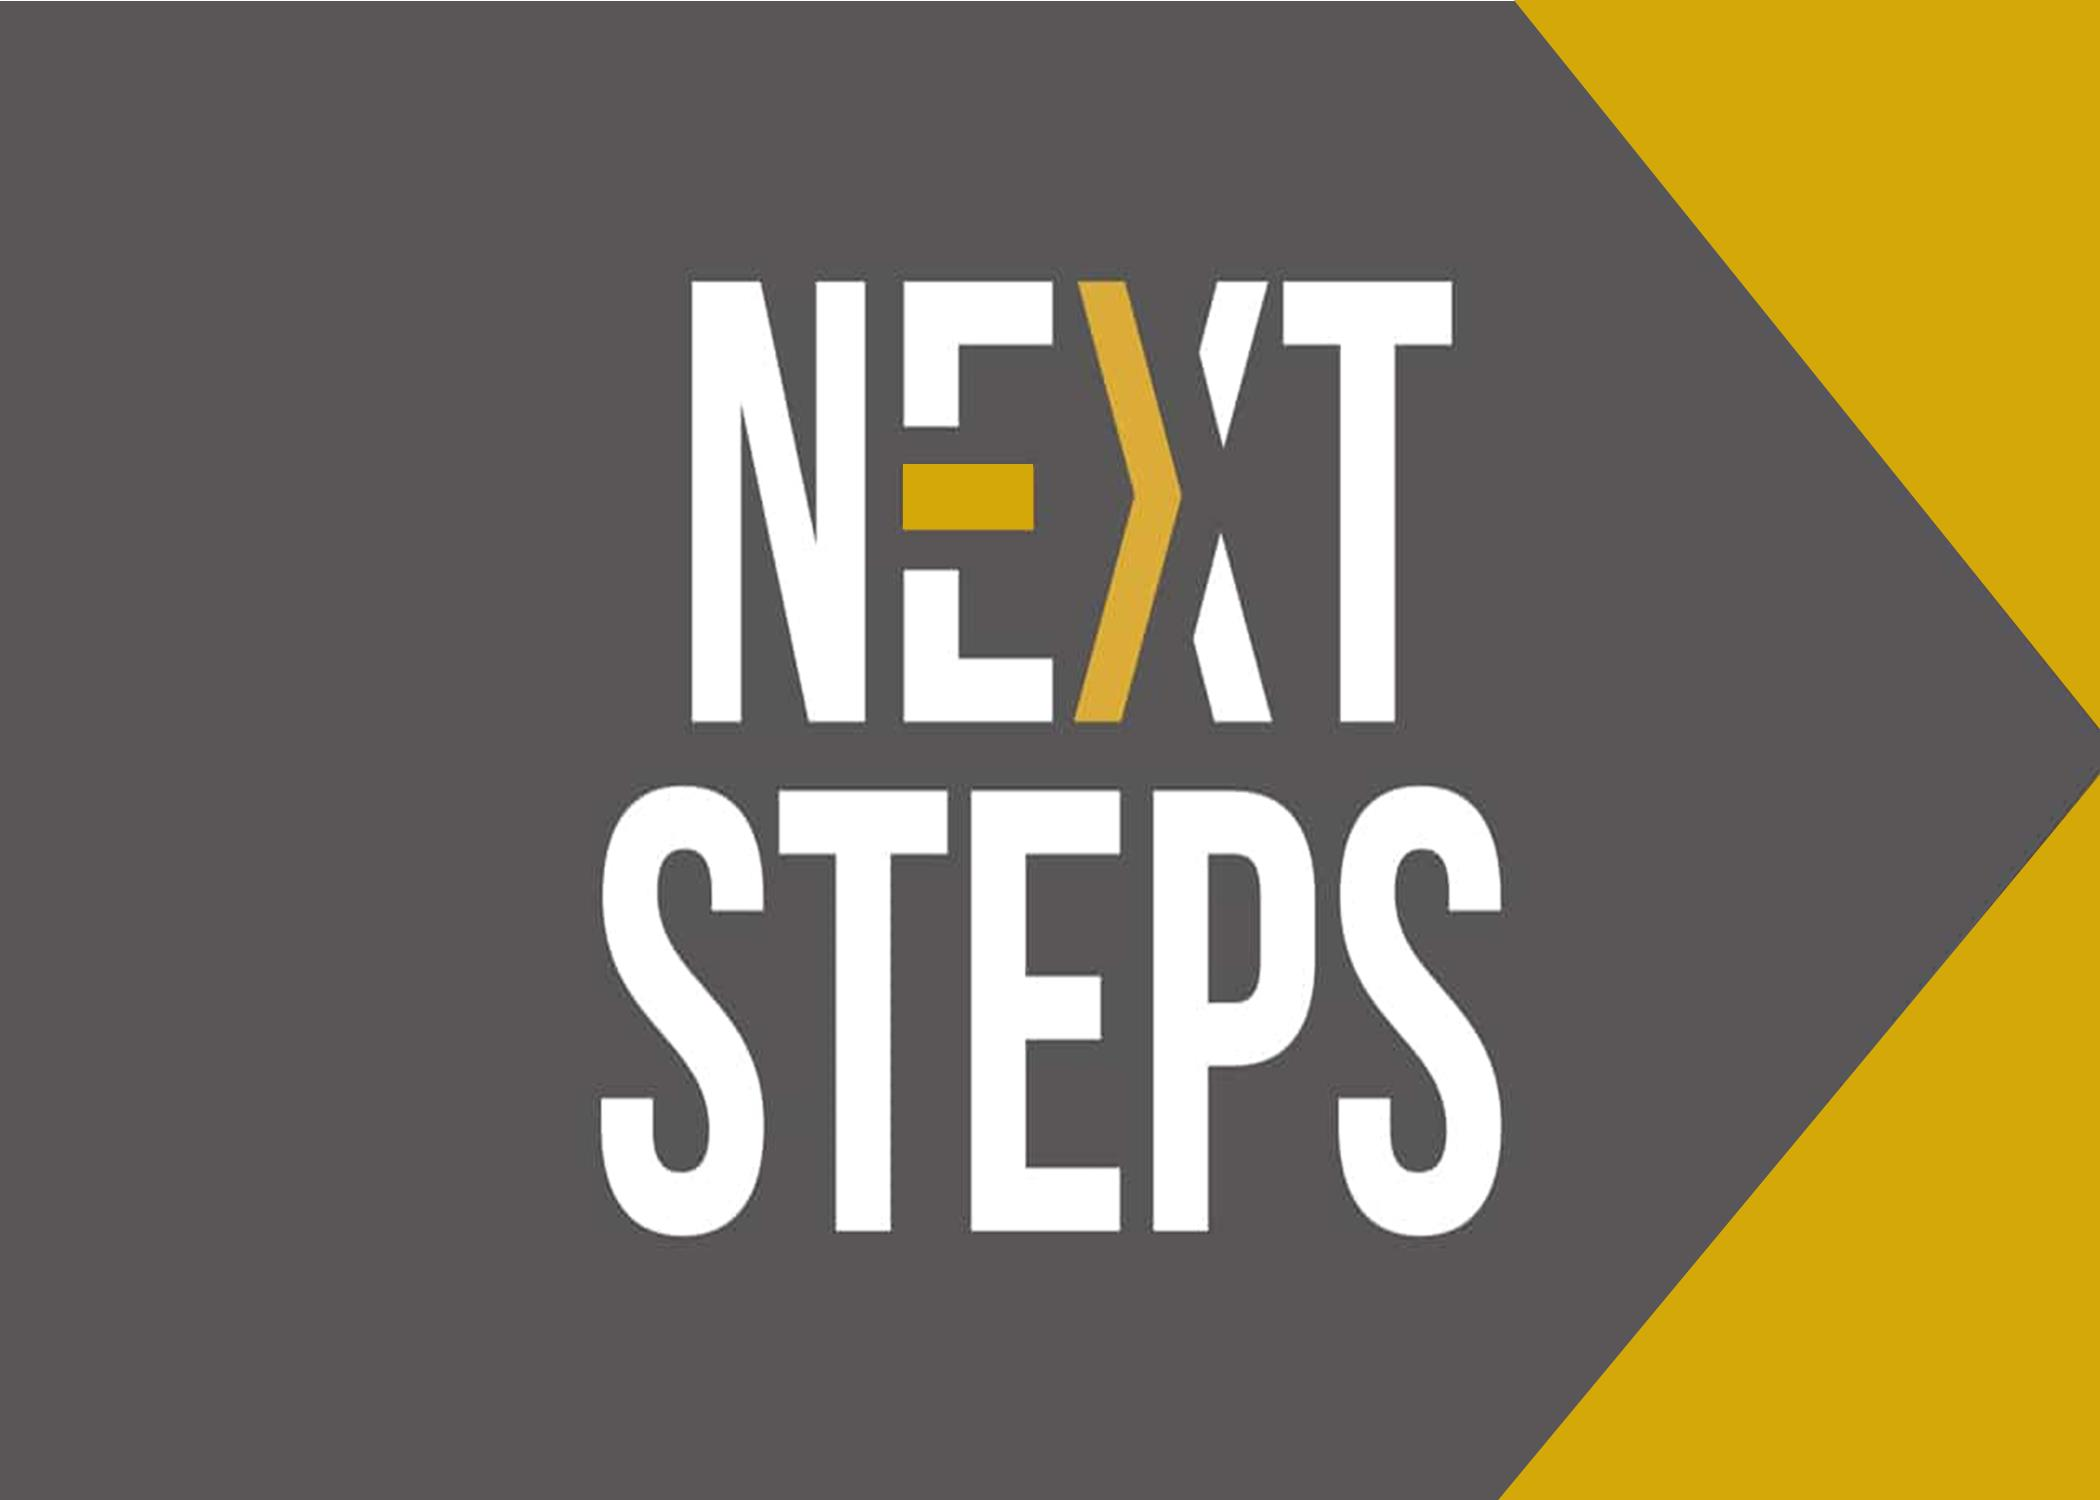 next steps logo (1).jpg